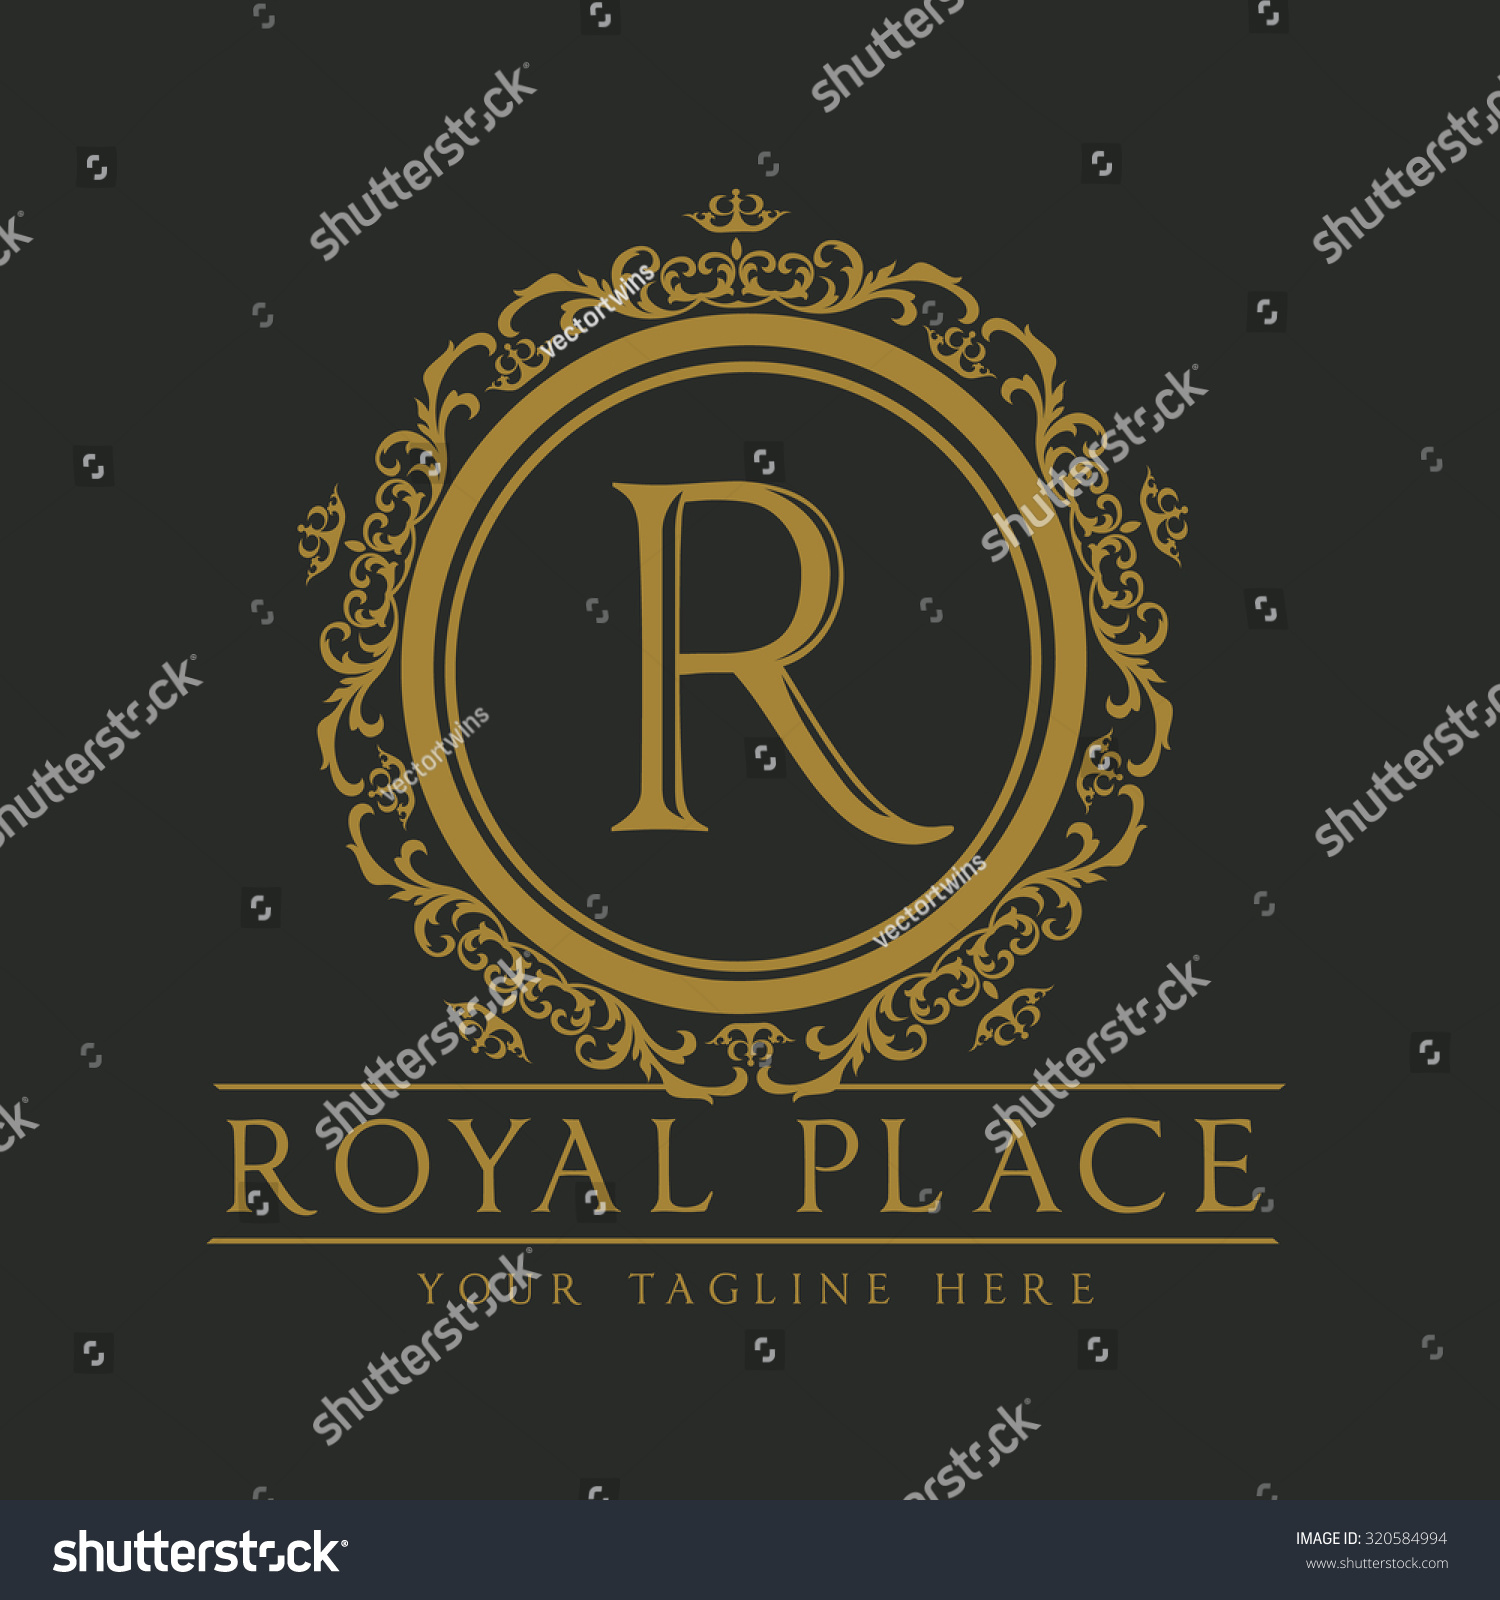 Royal Place Logoboutique Hotel Logohotel Logocrest Stock Vector ...